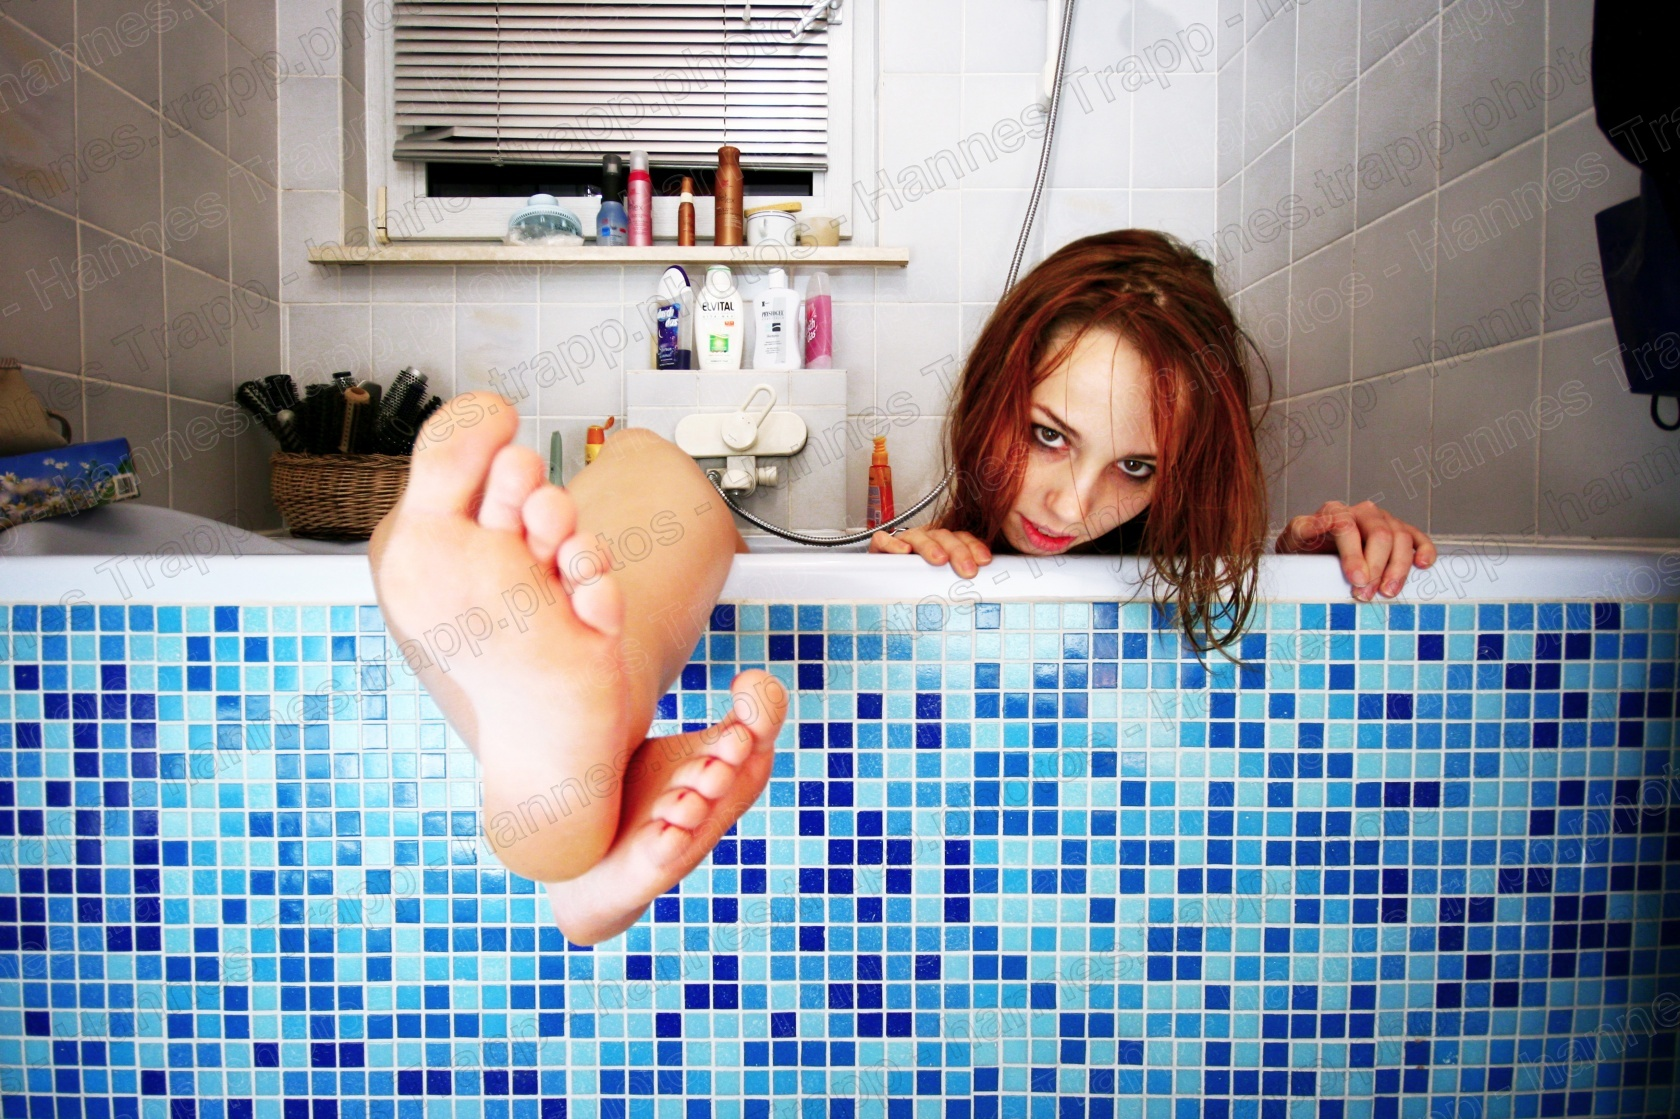 Foto: Chilling in the Bathtub